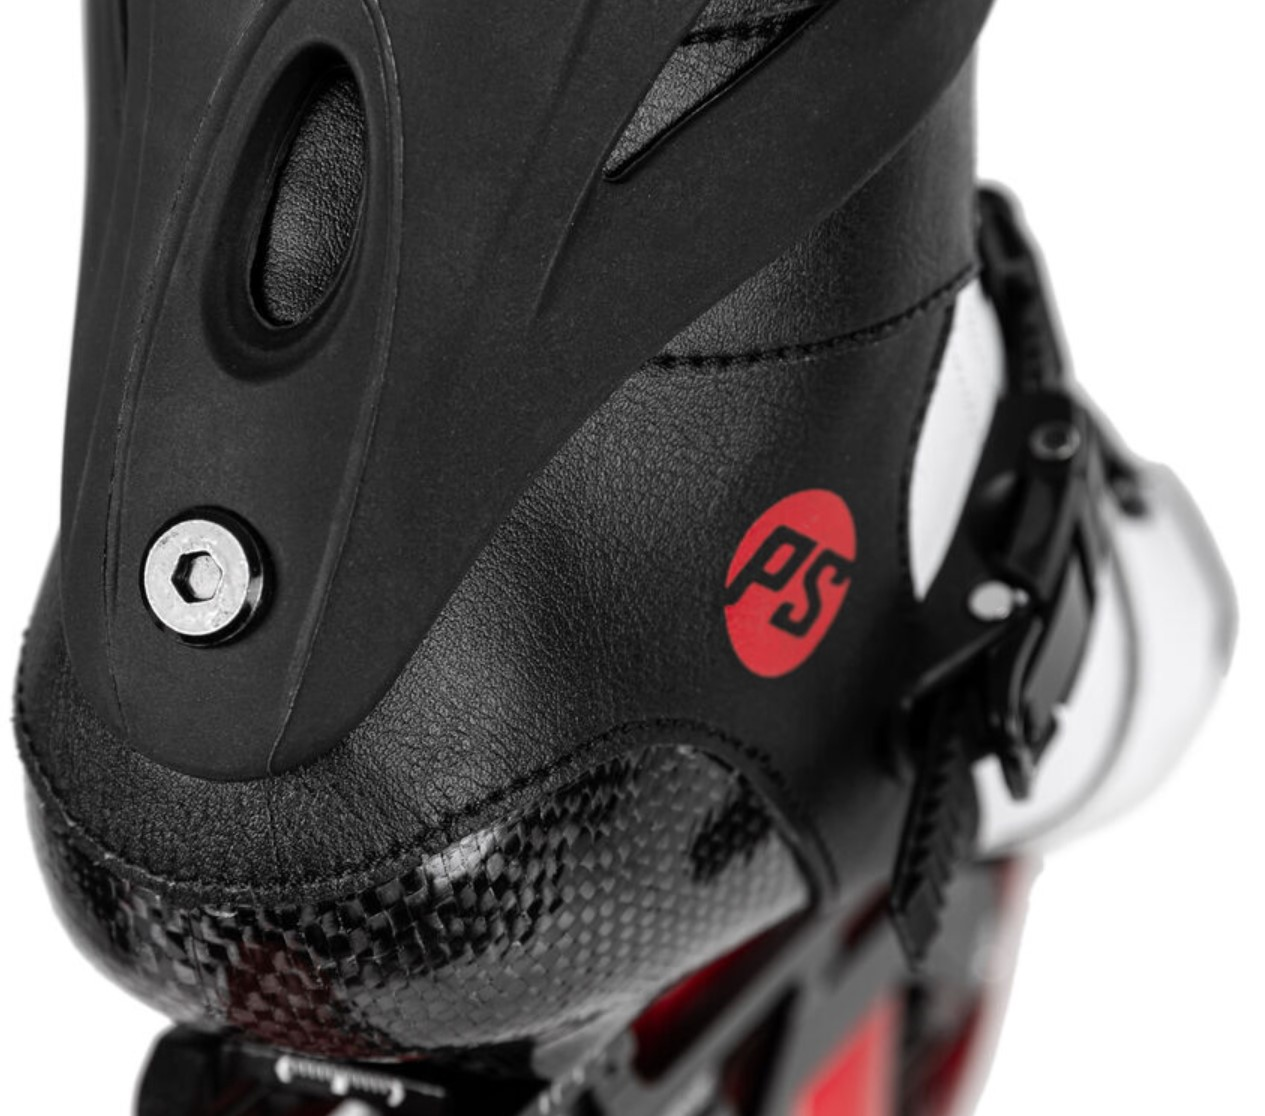 The cuff can be taken off of the Powerslide Speed Slalom Arise SL inline skate